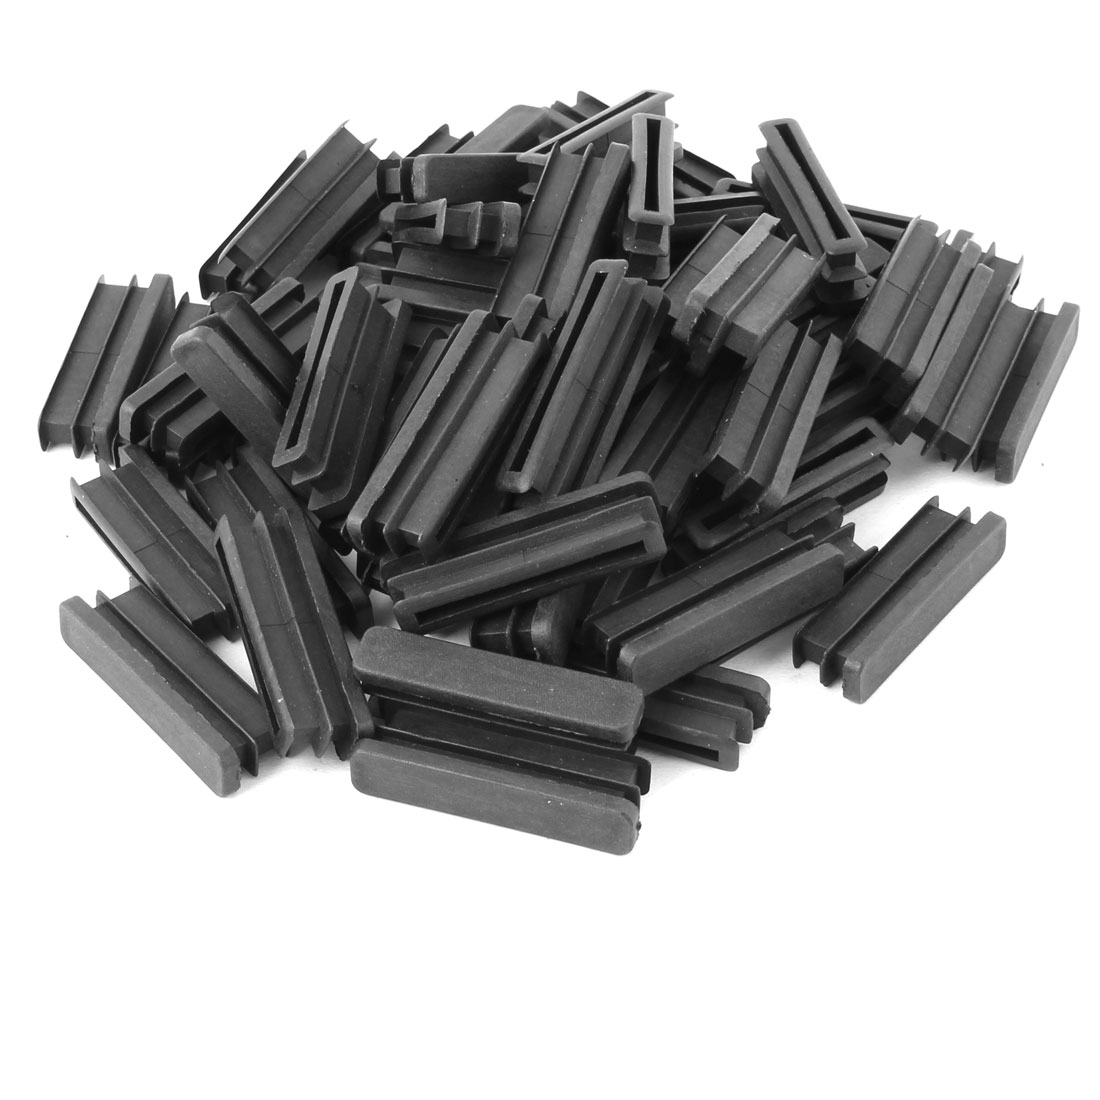 Home Plastic Rectangle Floor Protecting Furniture Table Leg Tube Inserts Black 50 x 10mm 60pcs